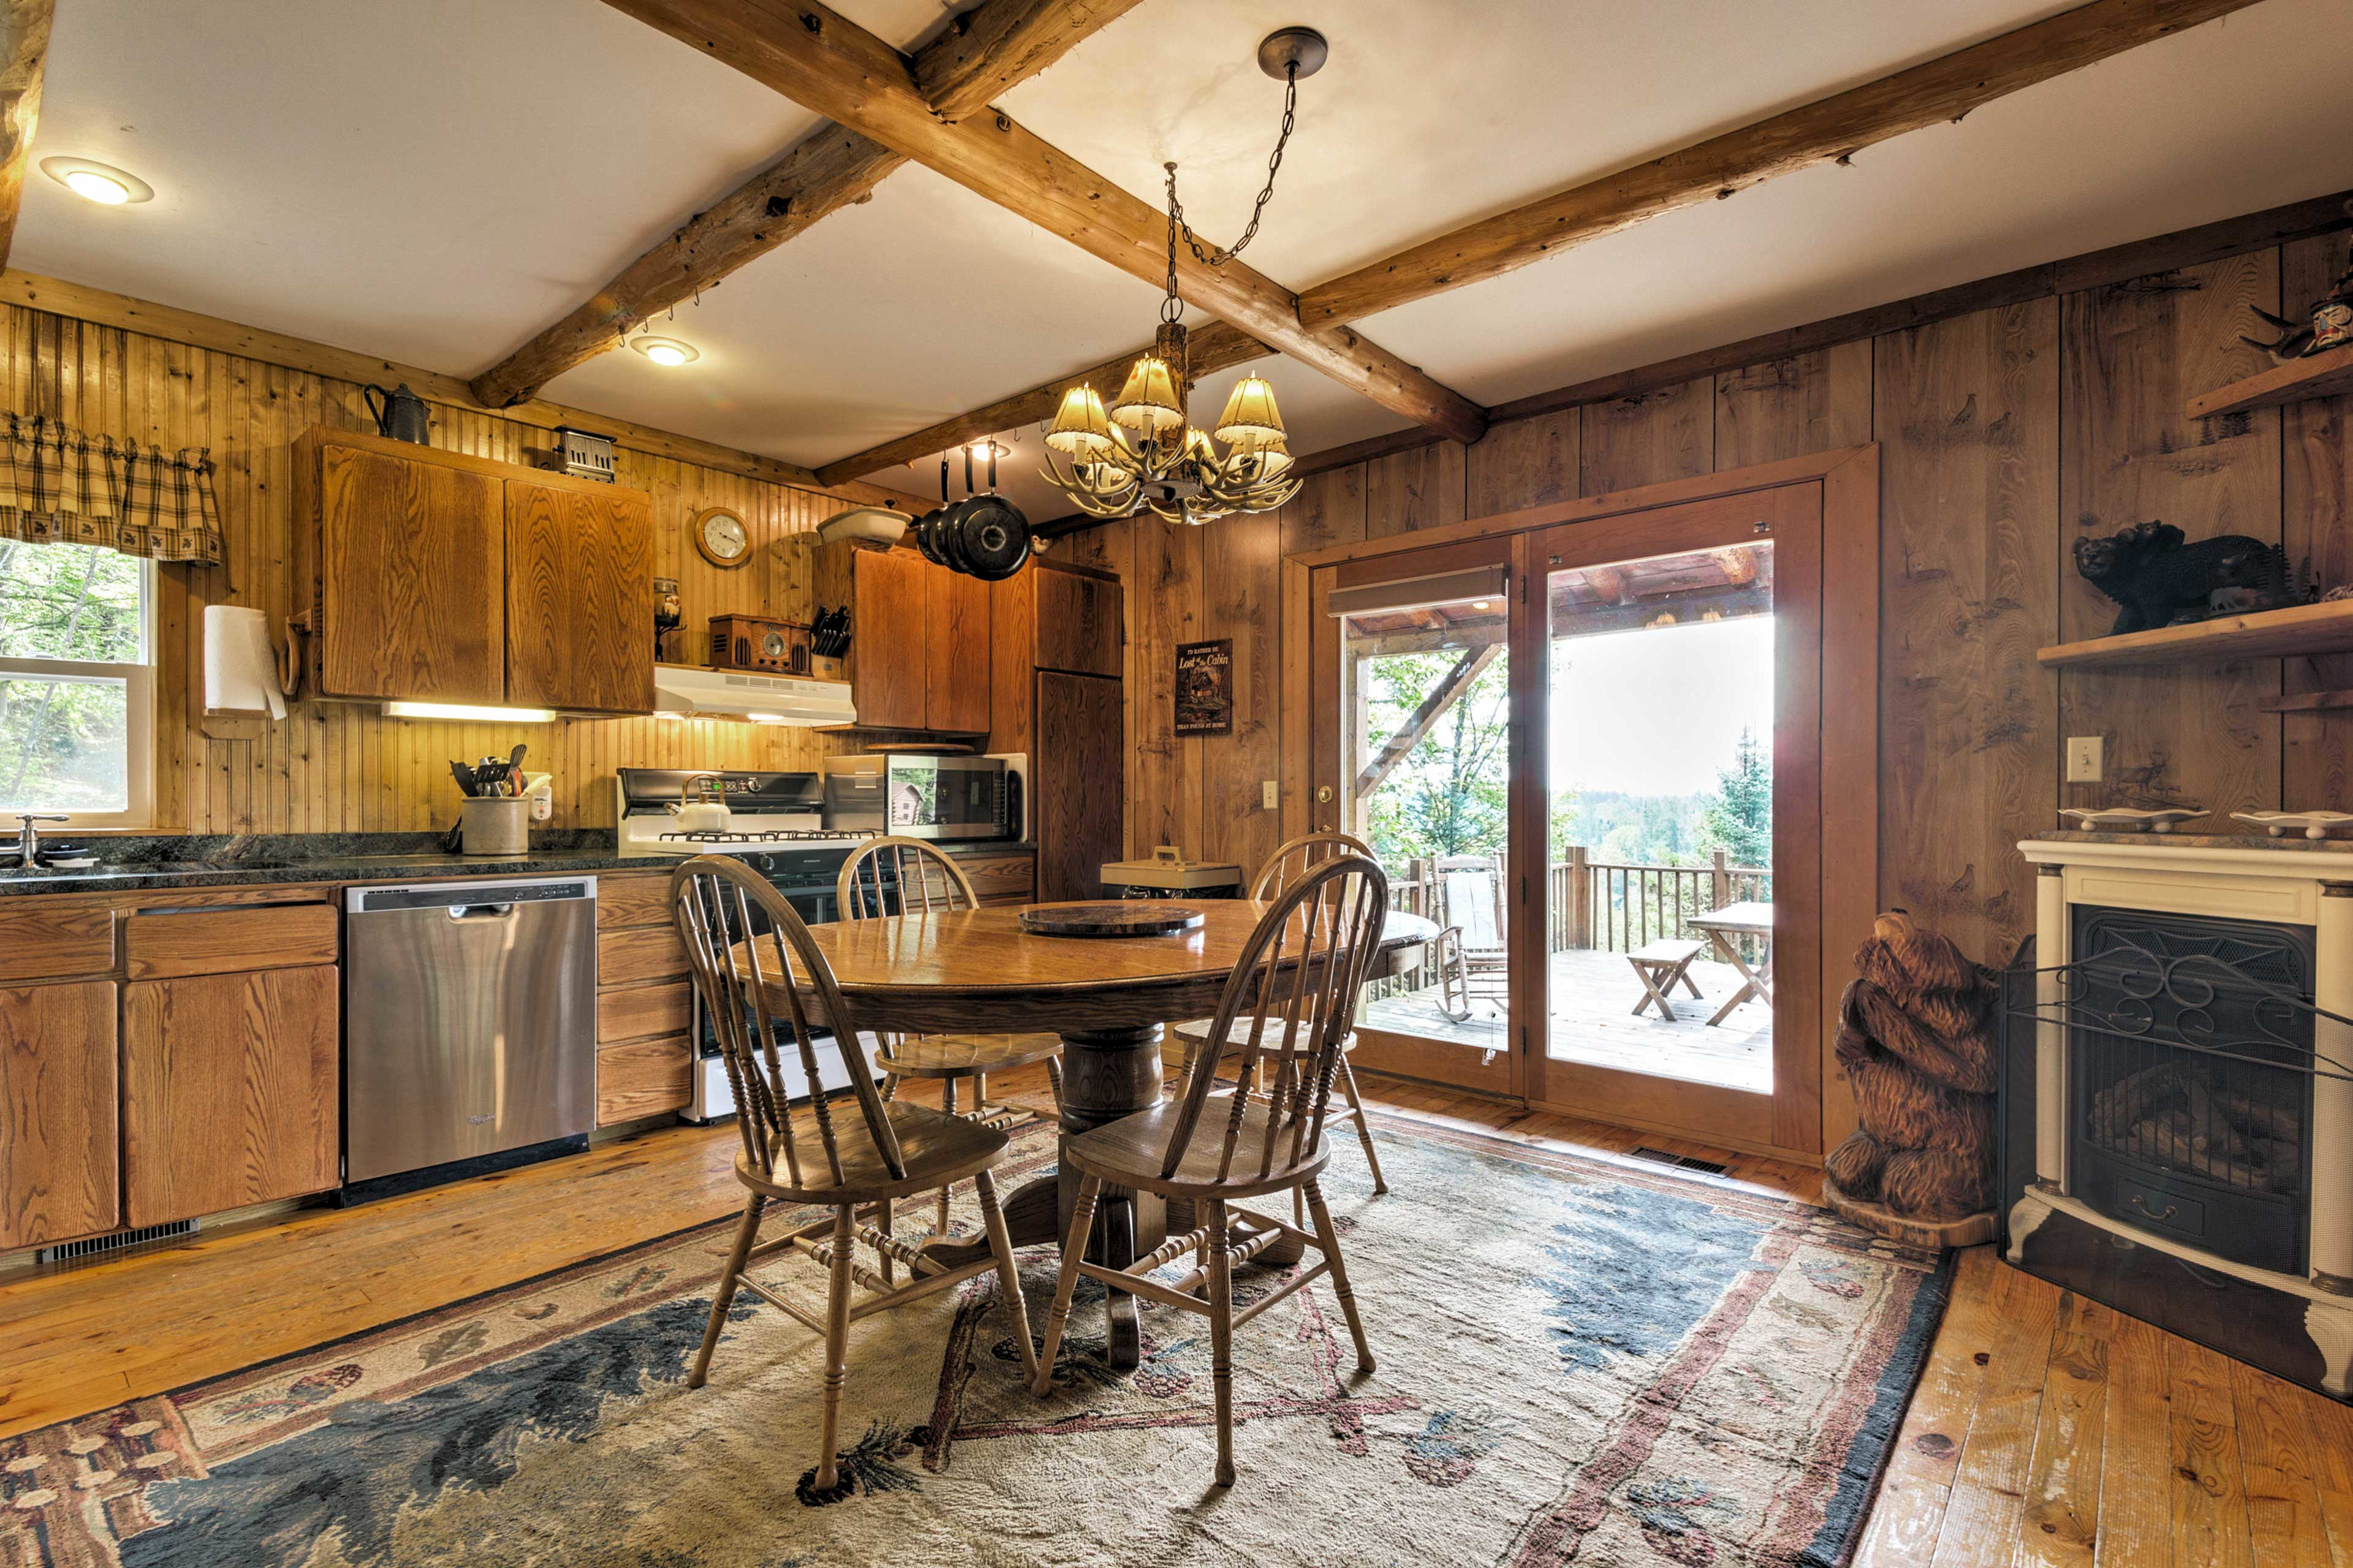 The kitchen has sliding glass doors that open up to the deck.